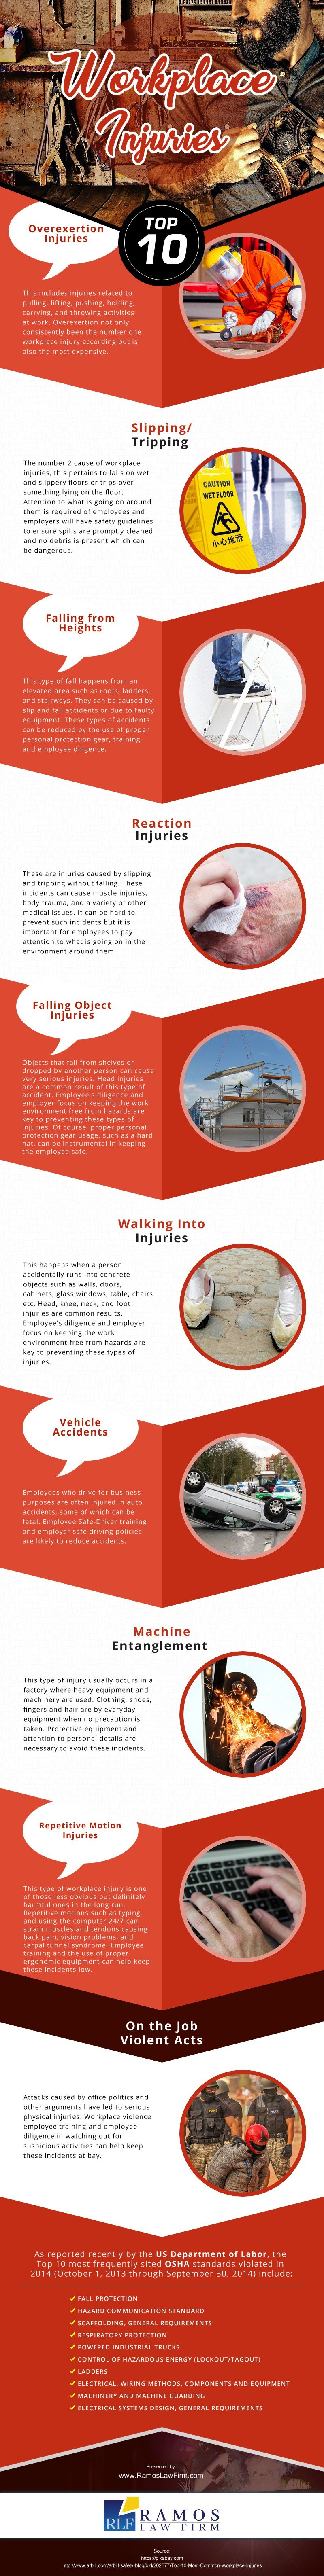 Preventing Common Workplace Injuries [infographic]